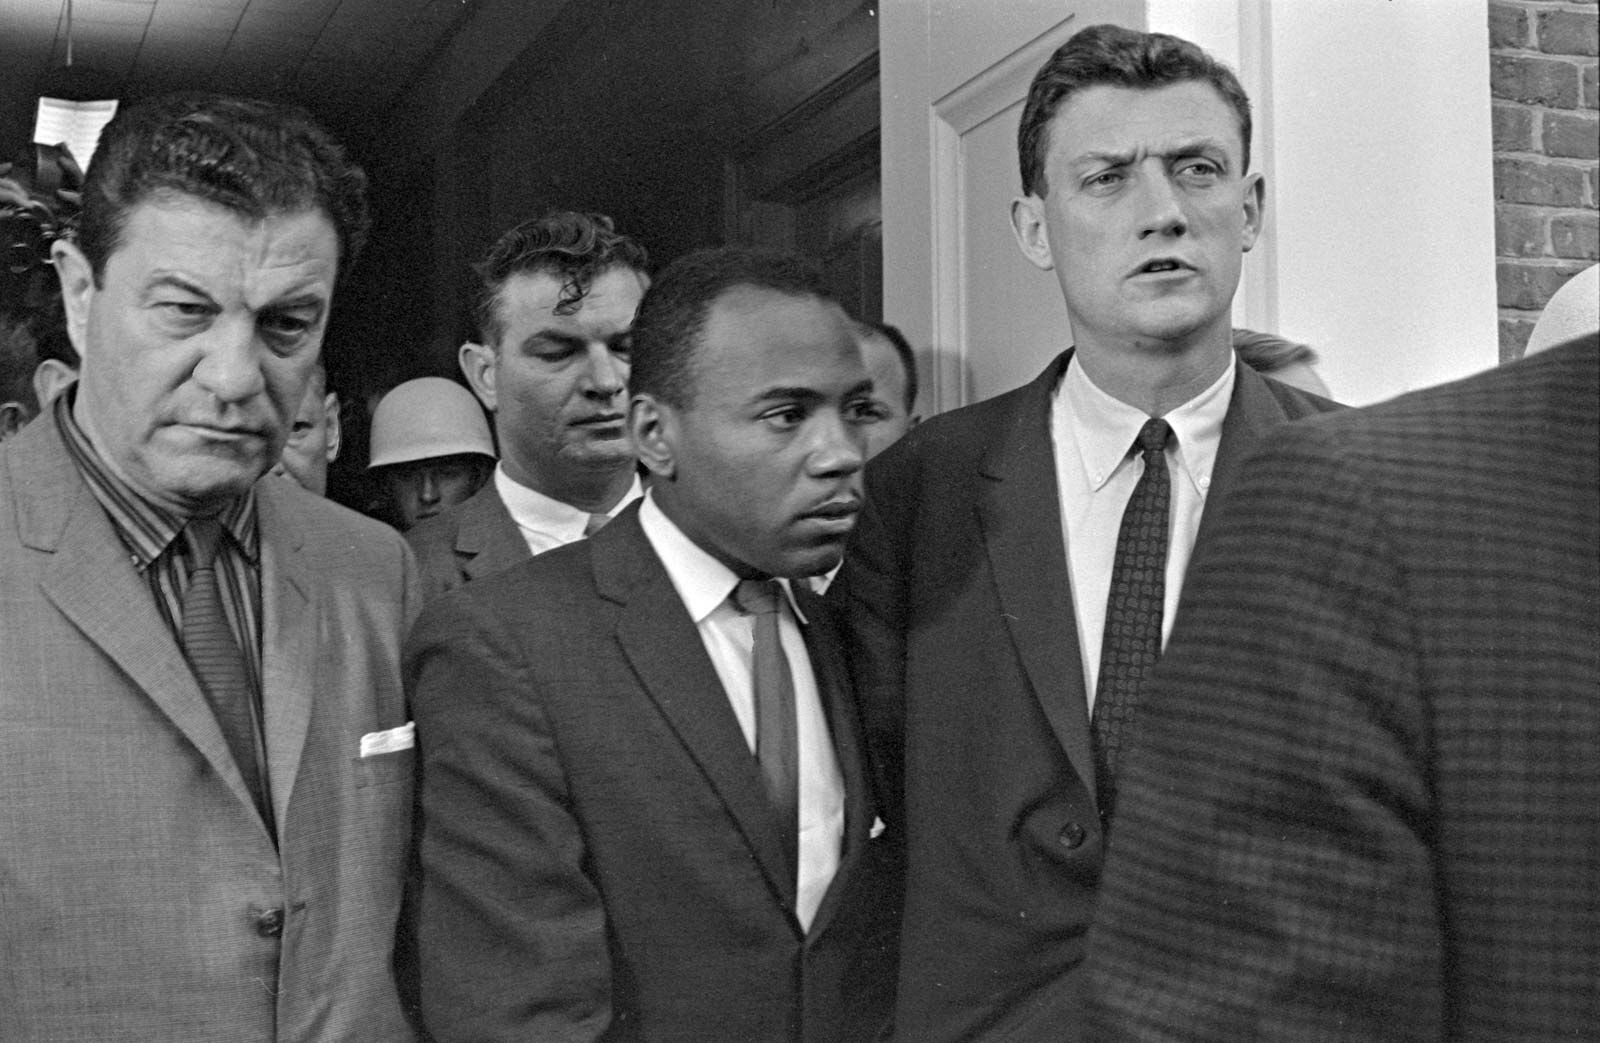 james meredith 1962 with federal officials  Britannica encylopedia.jpg